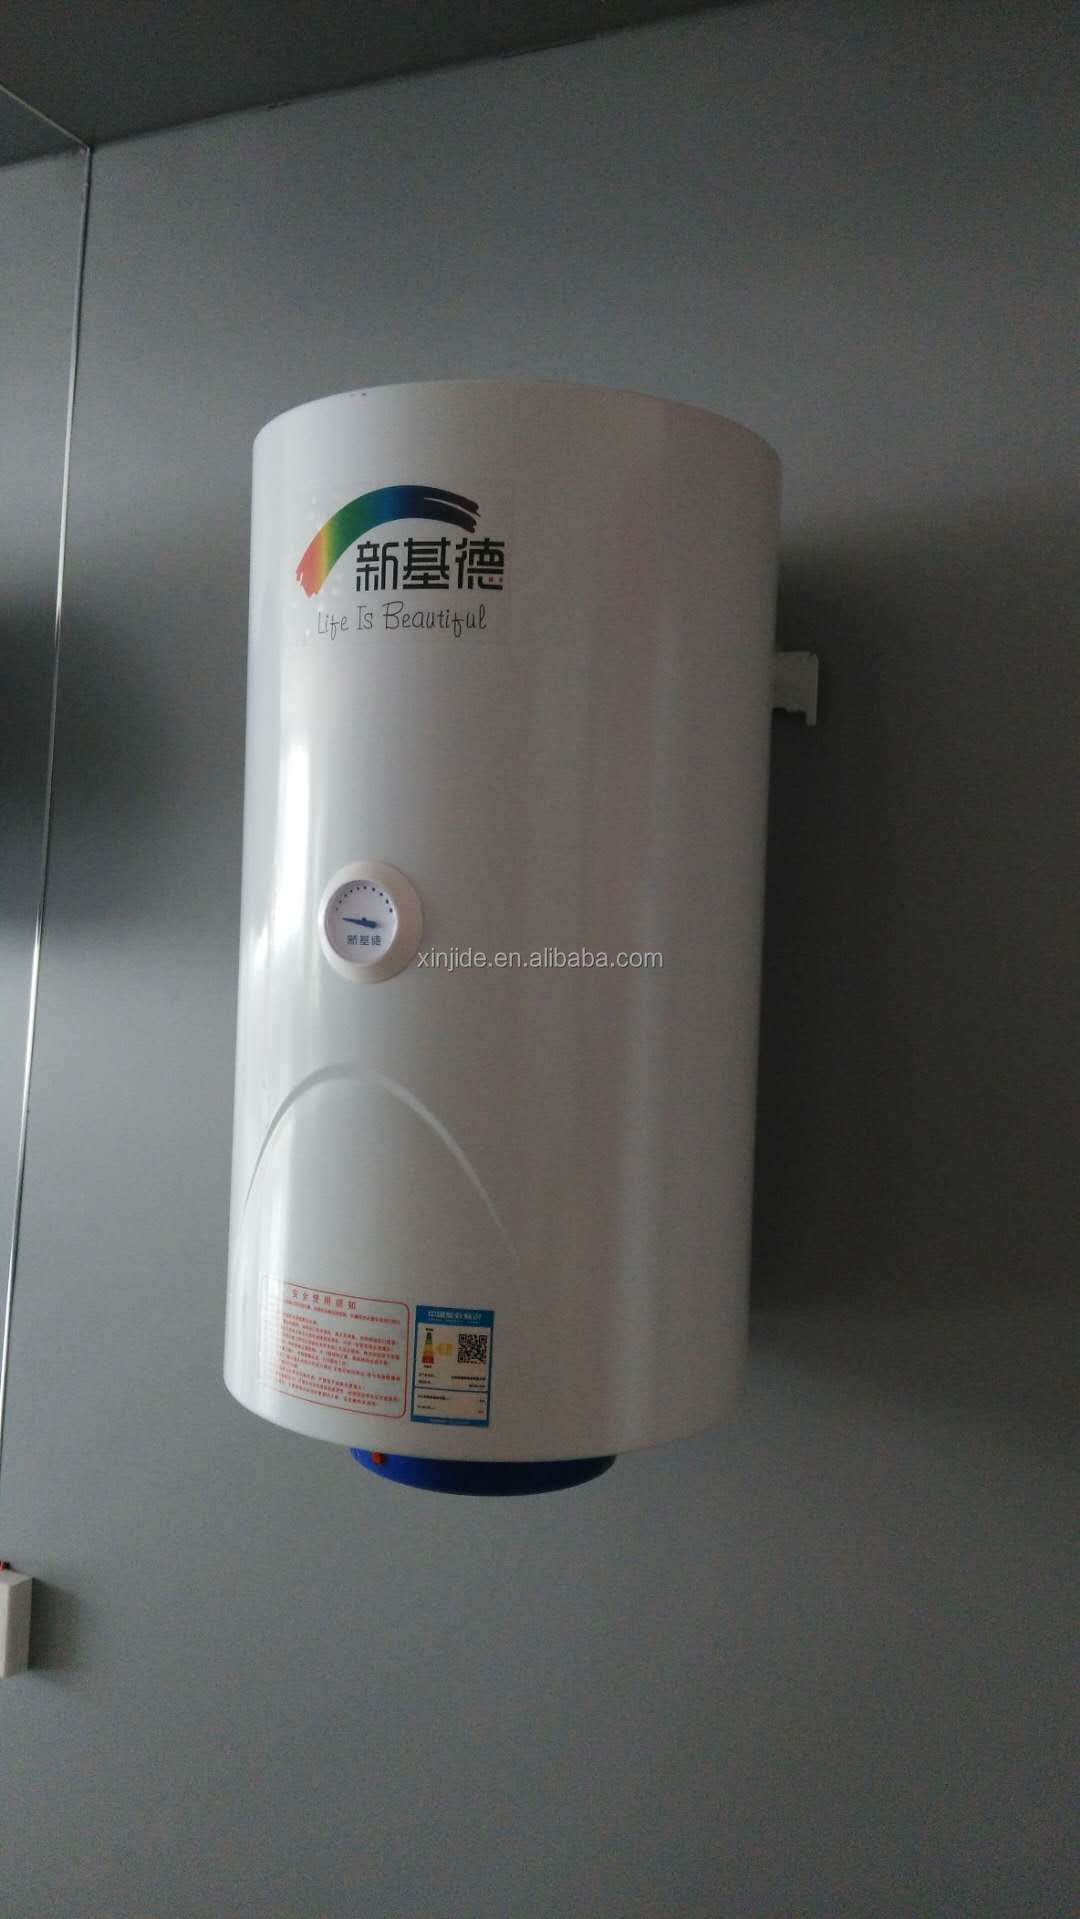 China Factory Junkers Electric Hot Water Heater For Sale - Buy ...